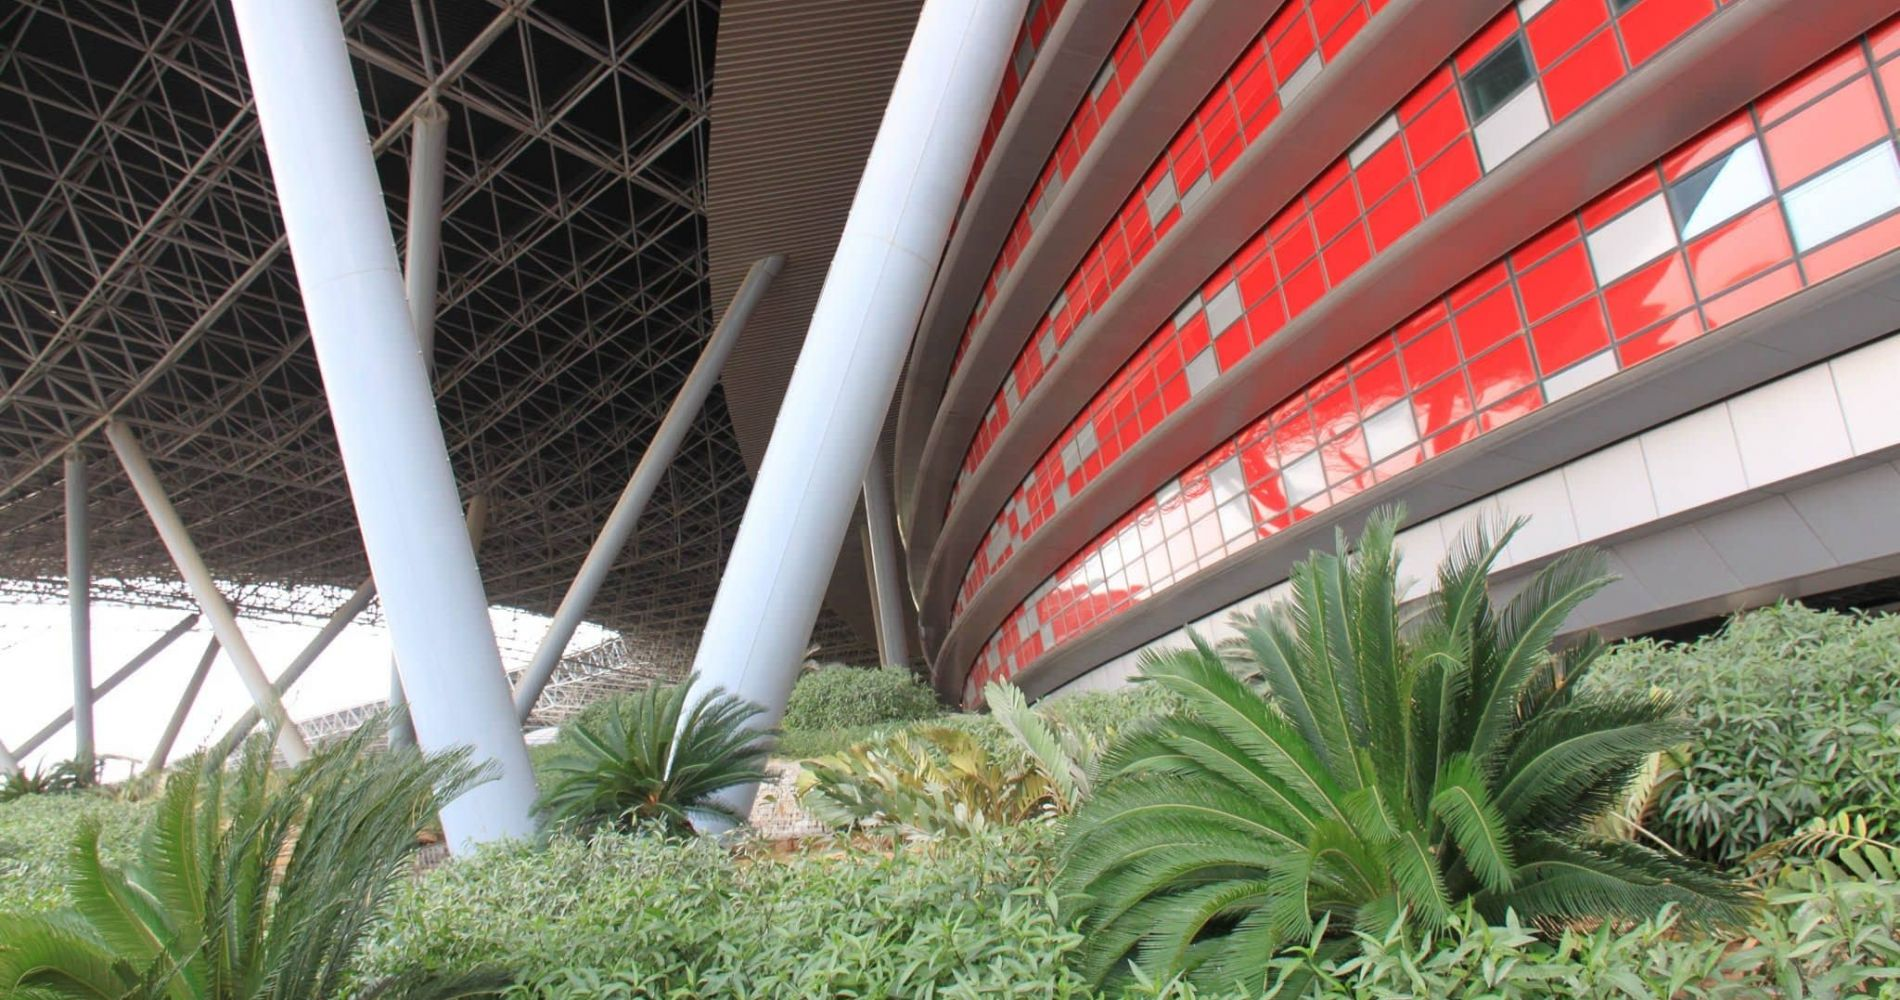 An Exciting Day at the Ferrari World in Abu Dhabi